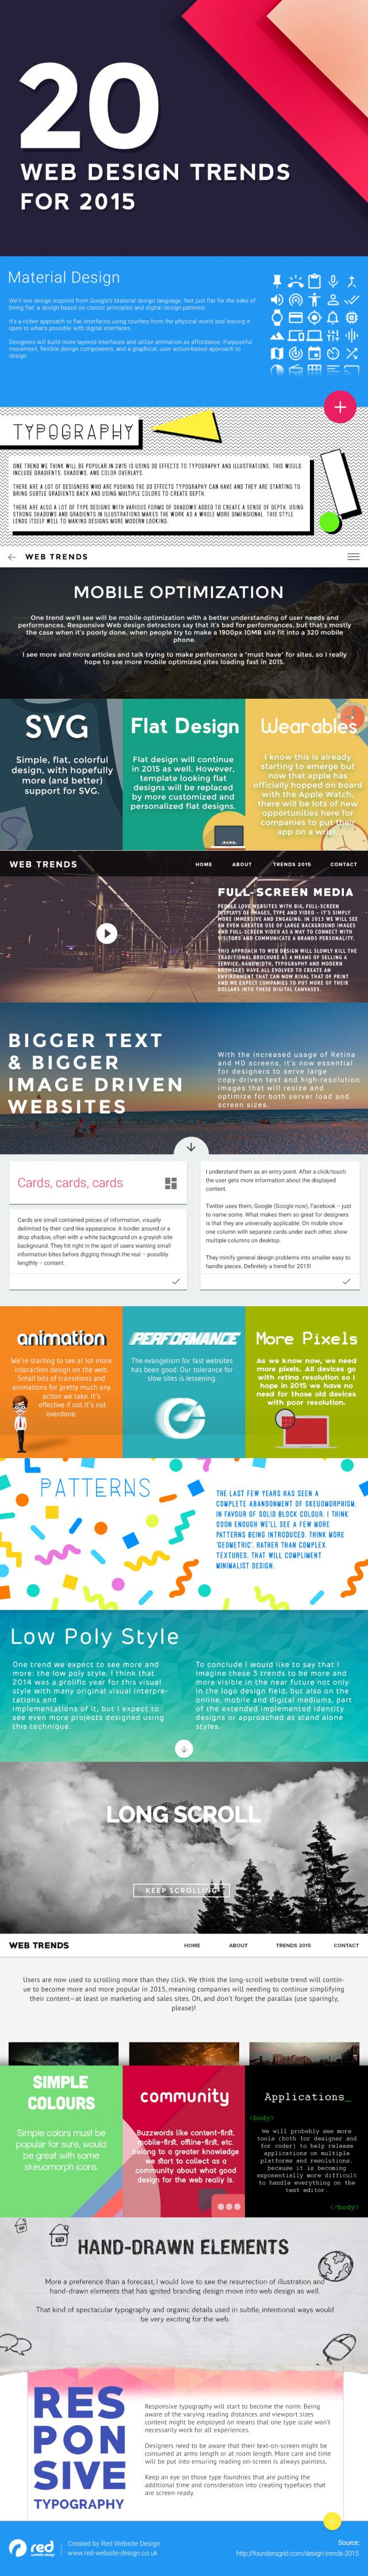 20 Web Design Trends for 2015 With a new year just around the corner Red Website Design have taken a look at the trends the design community expect to see become more dominant in 2015.